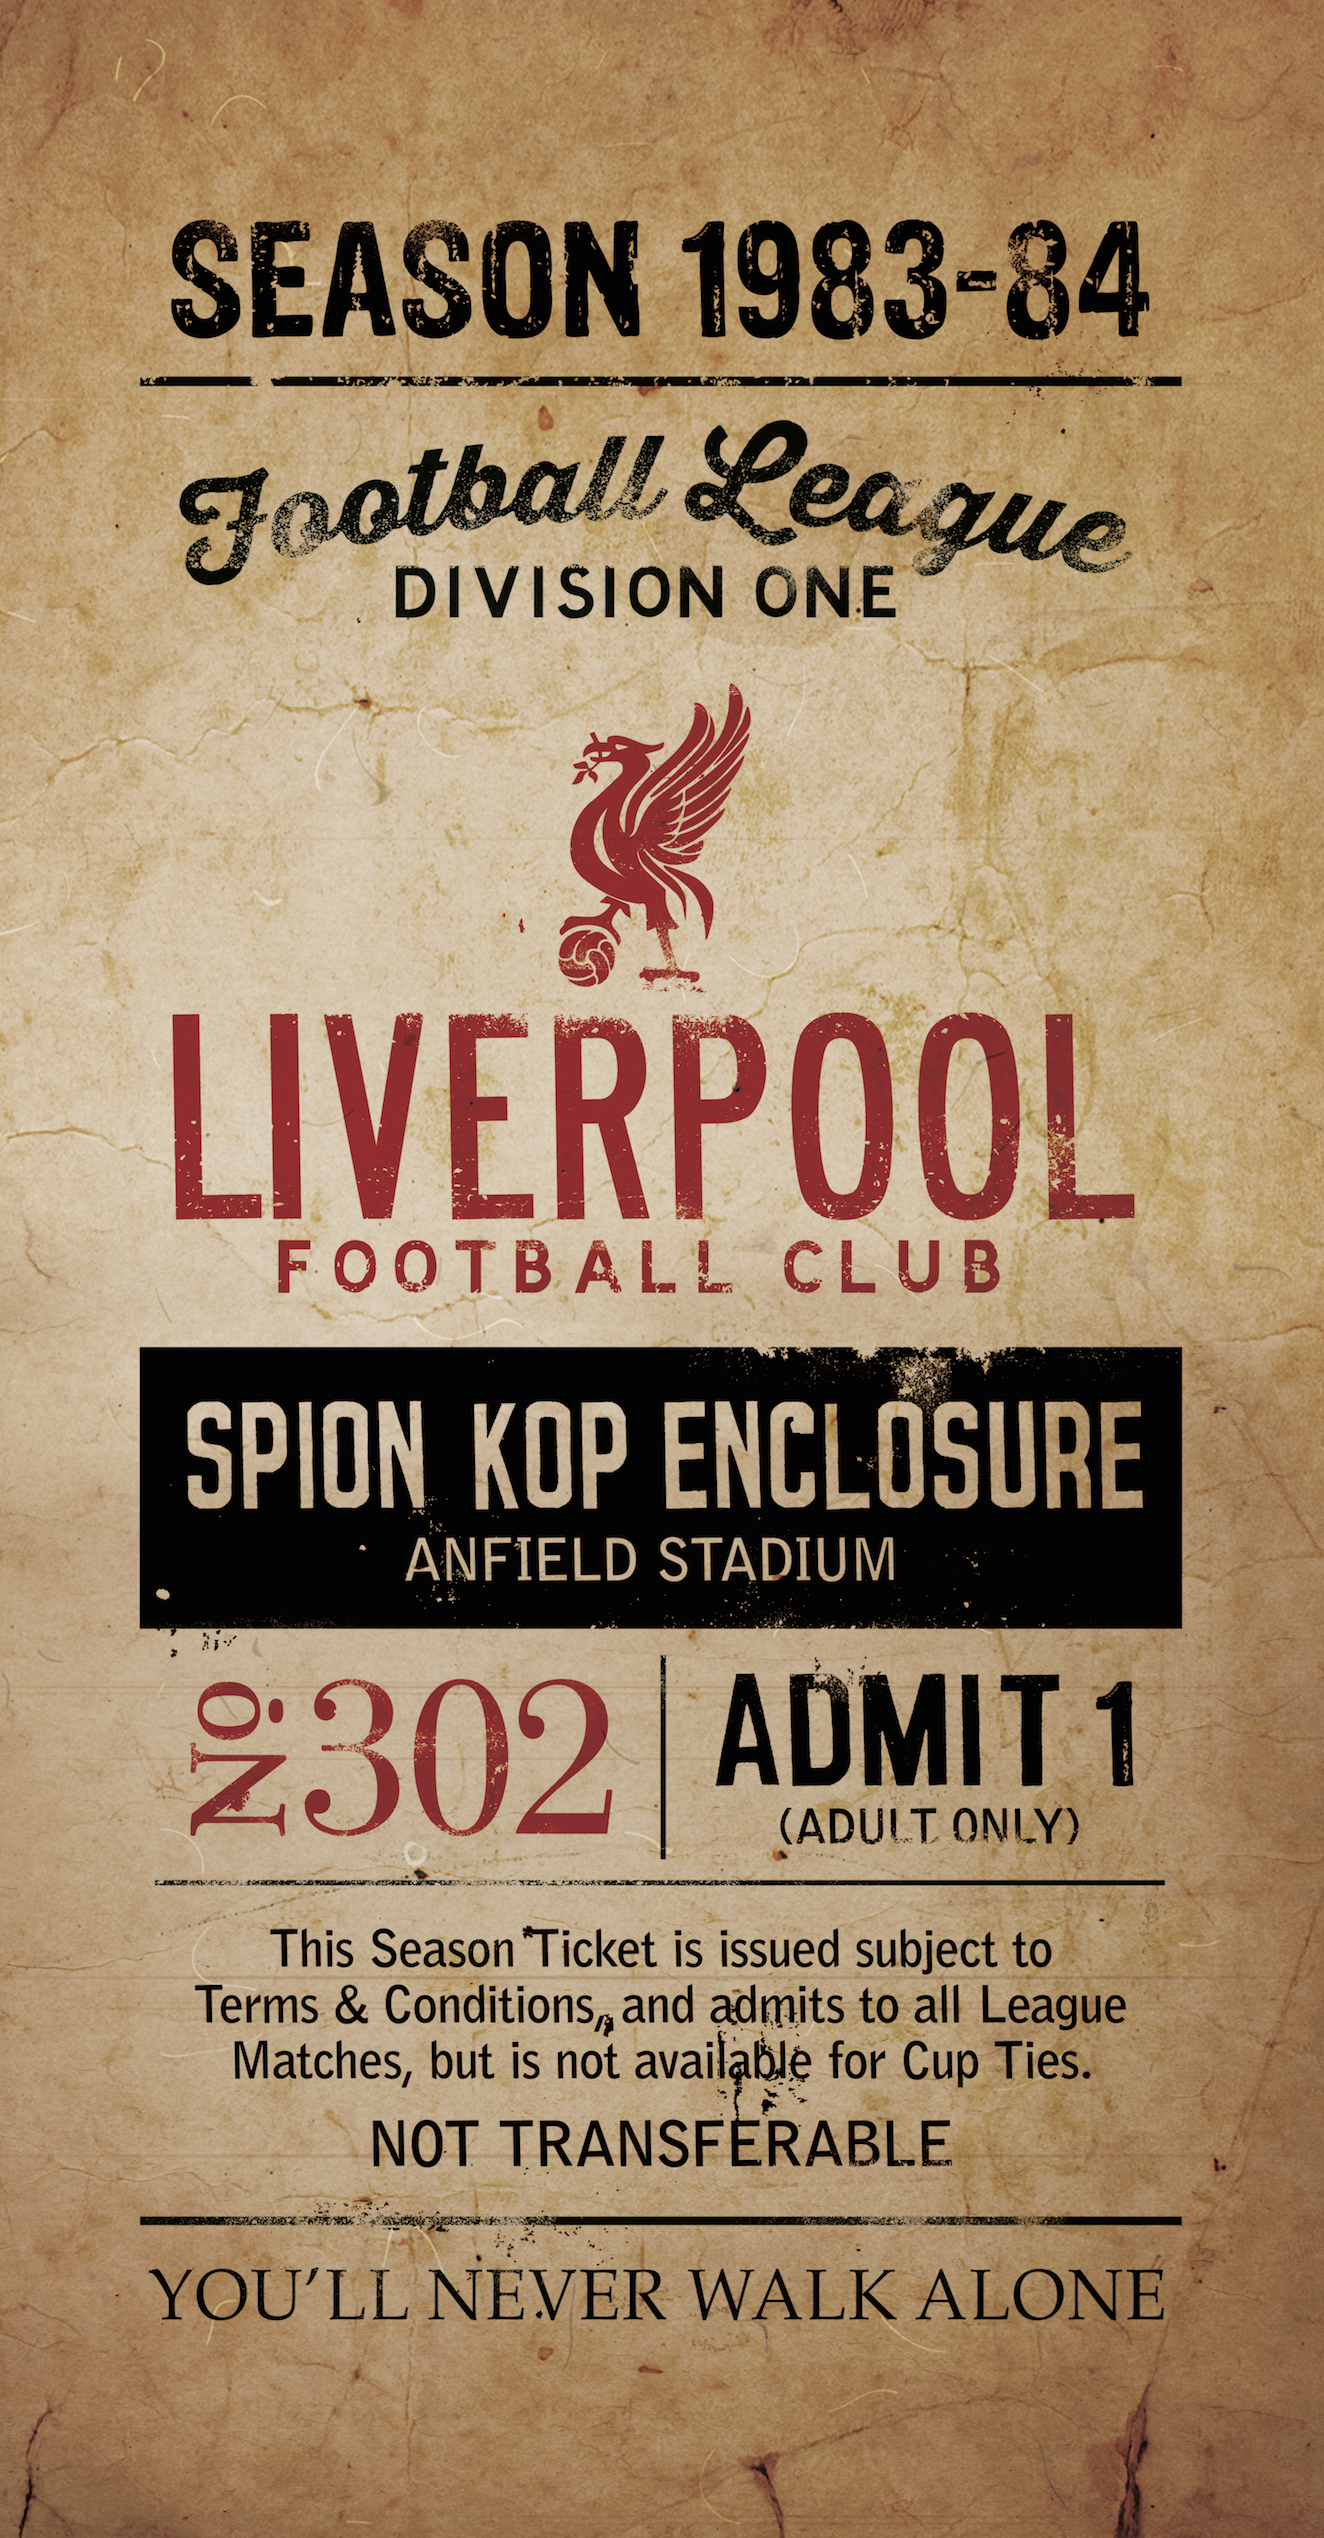 0fad2781ef0345a1d34a3bd1615bfb2a - How To Get Liverpool Tickets Without Being A Member